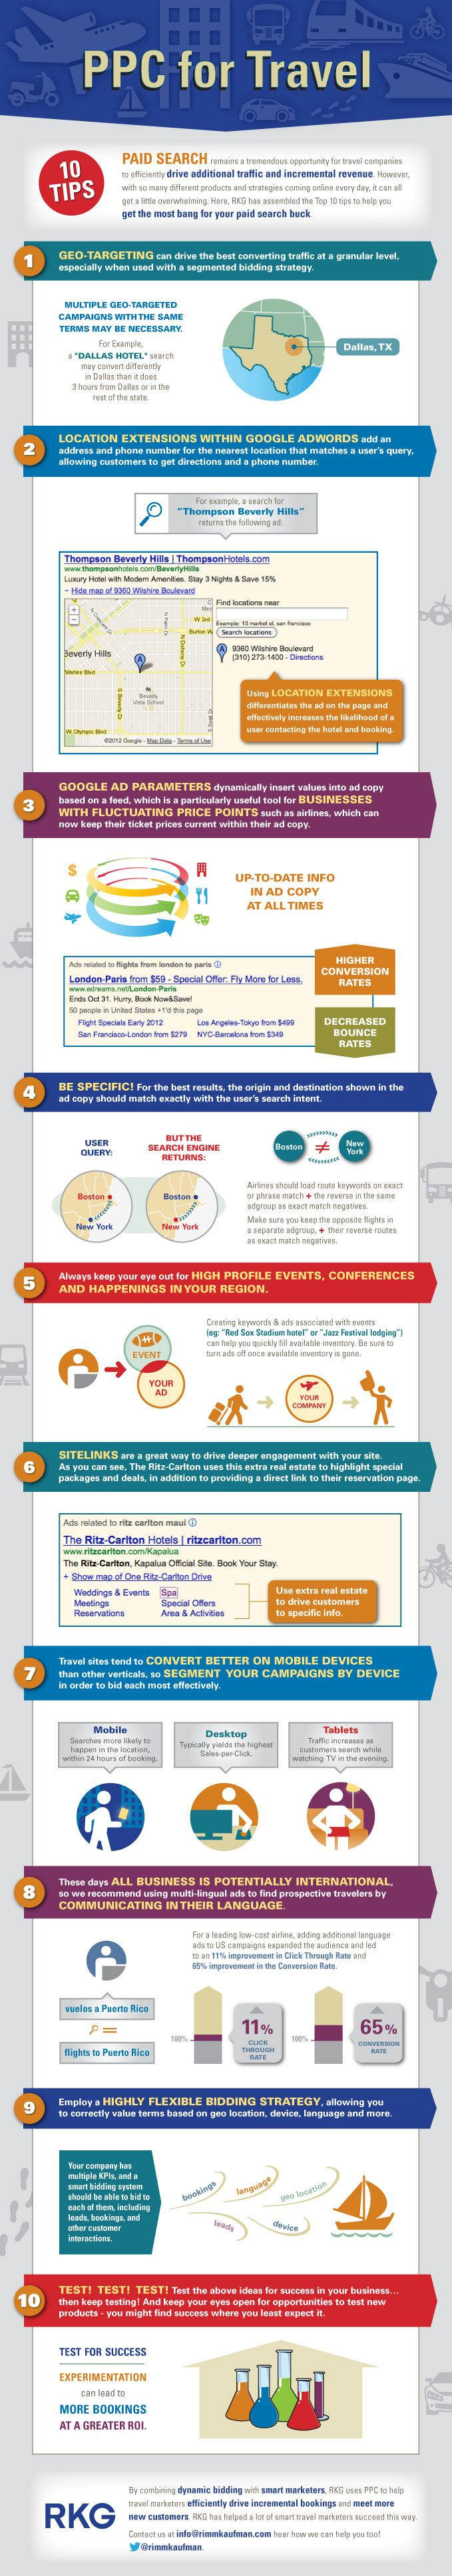 fceea591c634f94bd032771a0a17cf1d--ppc-marketing-online-marketing Advertising Infographics : 10 PPC Tips for Travel and Hospitality Companies